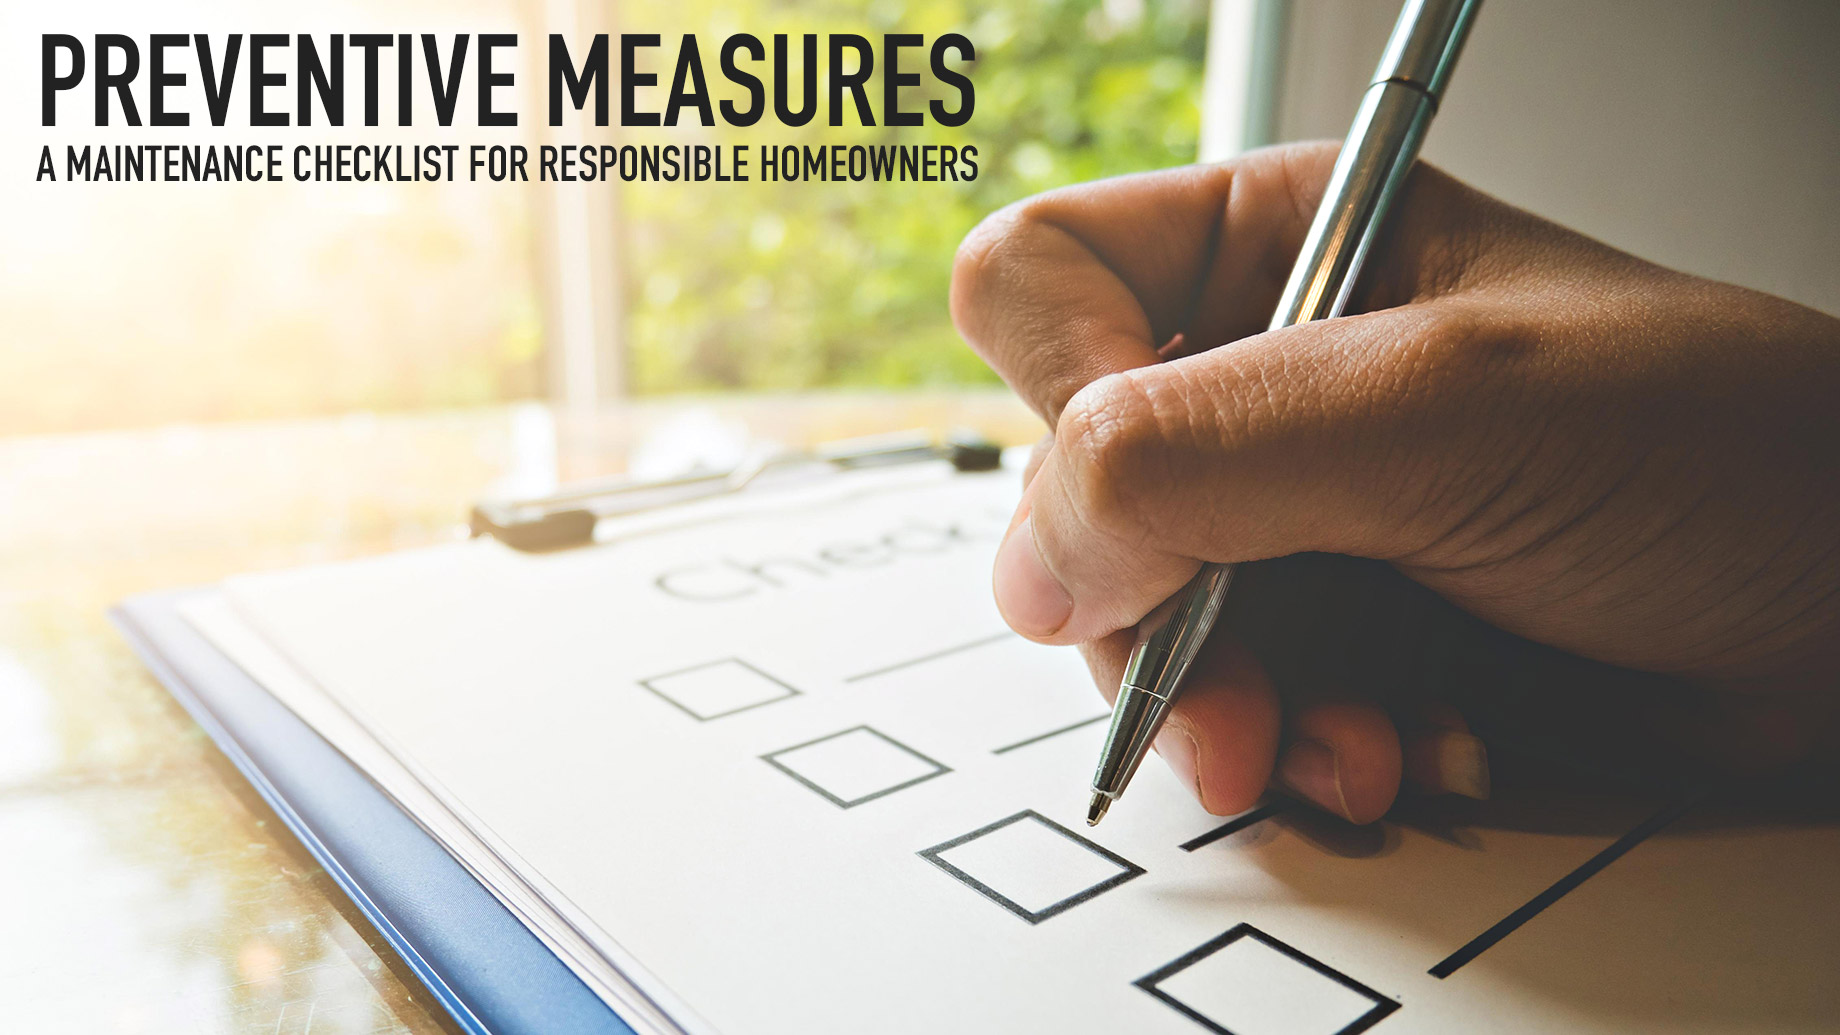 Preventive Measures - A Maintenance Checklist for Responsible Homeowners